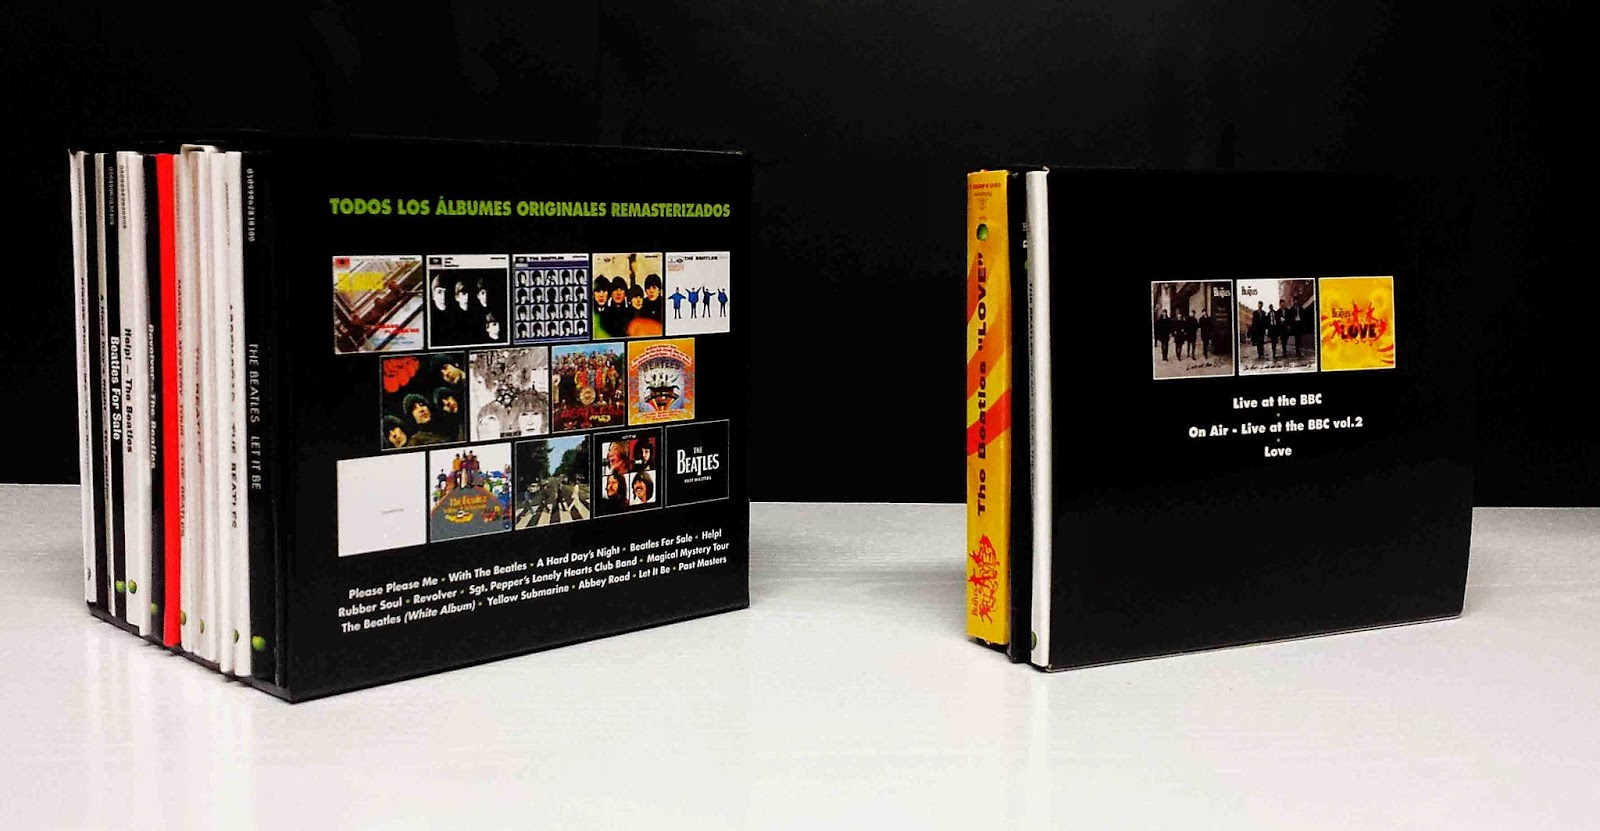 the daily beatle spanish beatles boxed set. Black Bedroom Furniture Sets. Home Design Ideas